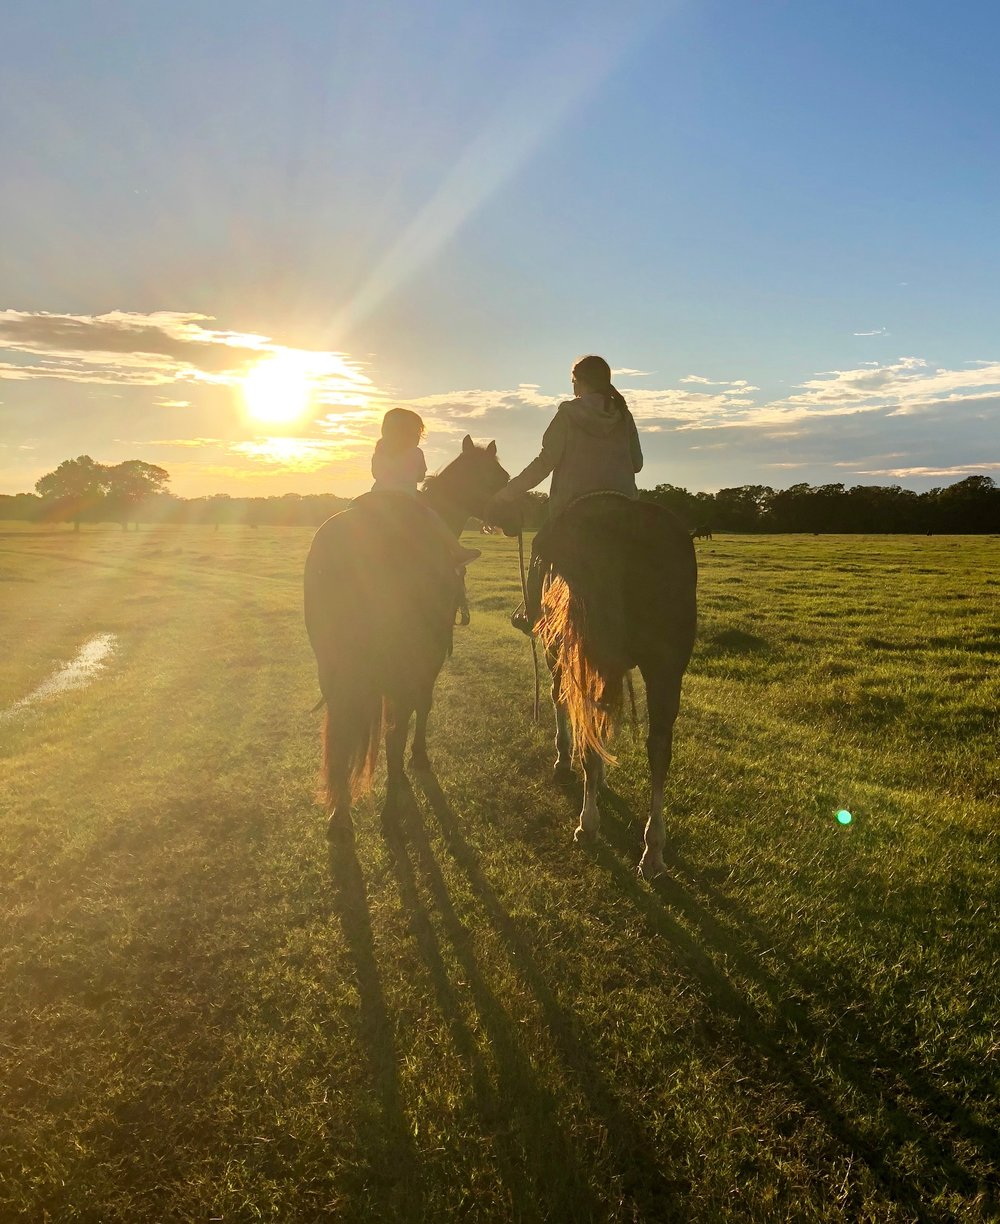 Sunset Ride. Journey and Rorri. Photo by Ricki Boyd.